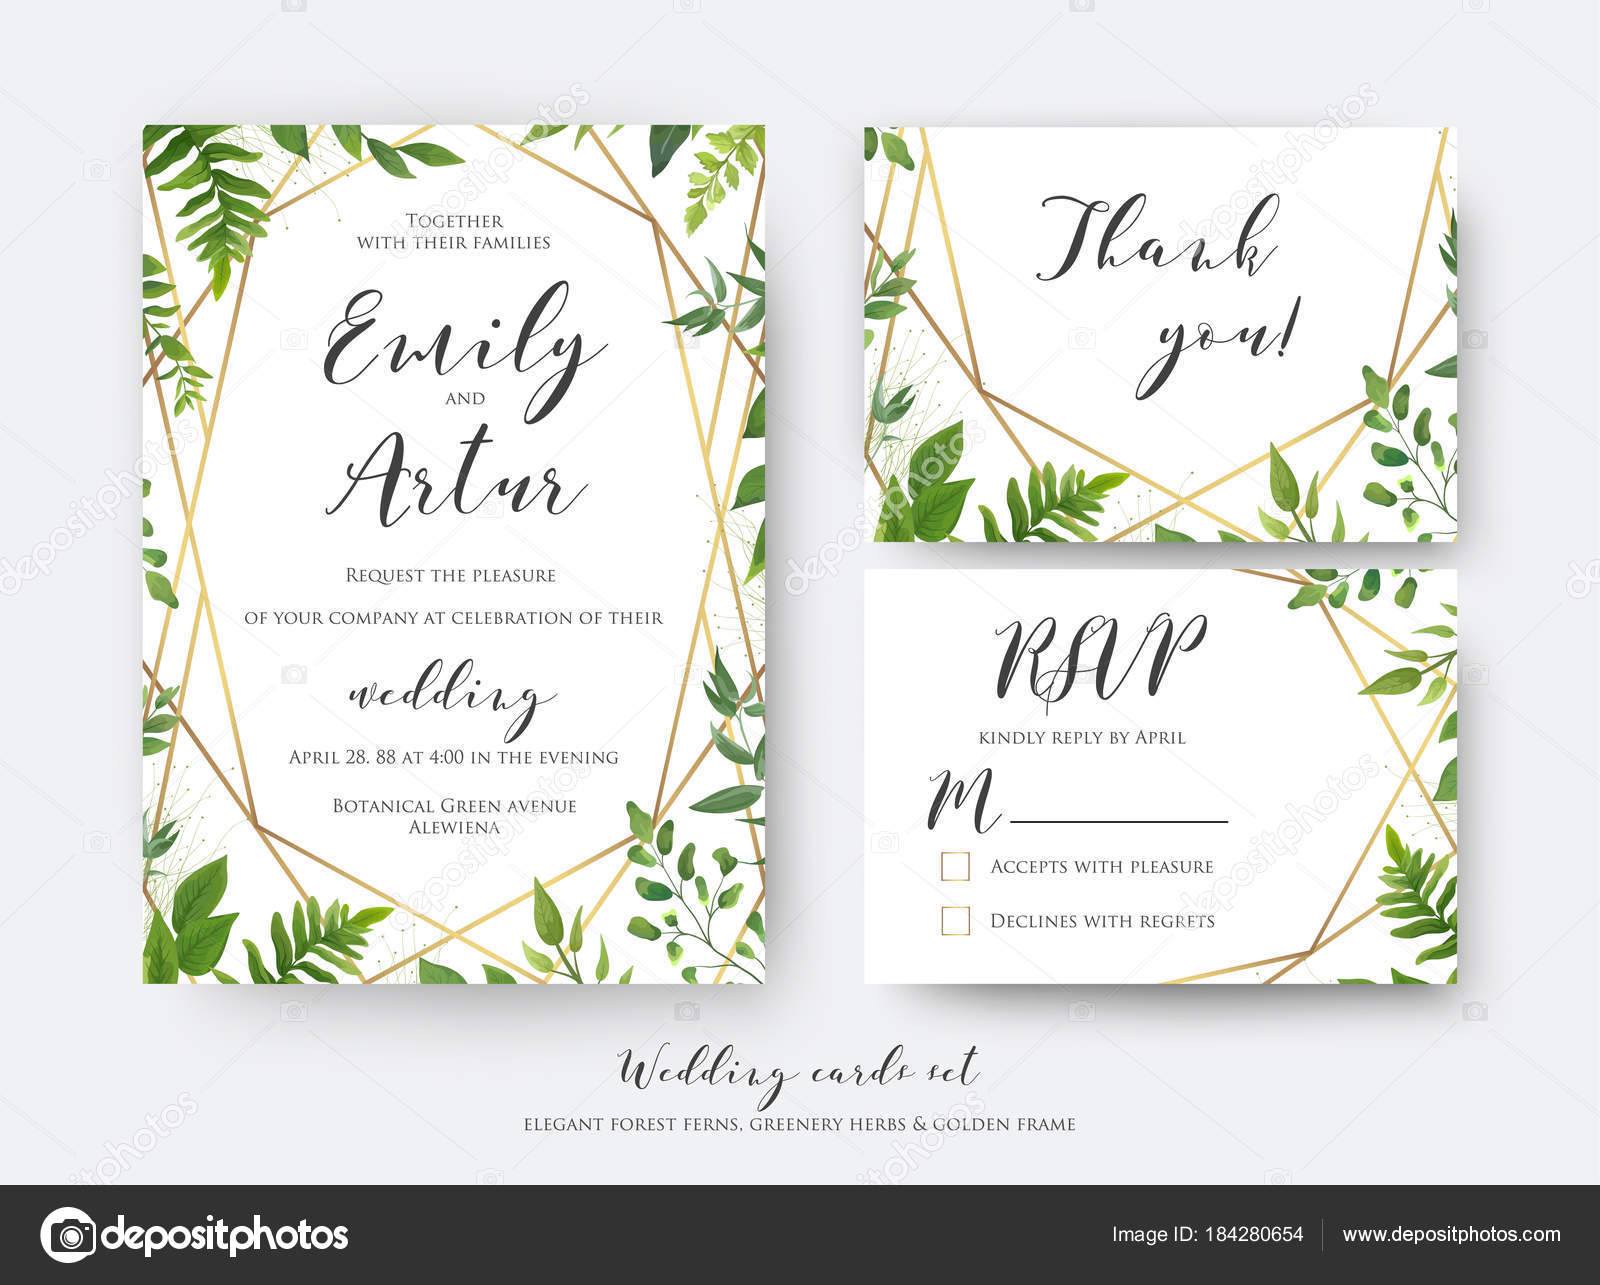 Wedding floral invite invitation rsvp thank you card template set vector modern botanical card design with green forest fern leaves greenery herbs border with luxury geometrical golden decoration vector by alewiena stopboris Choice Image